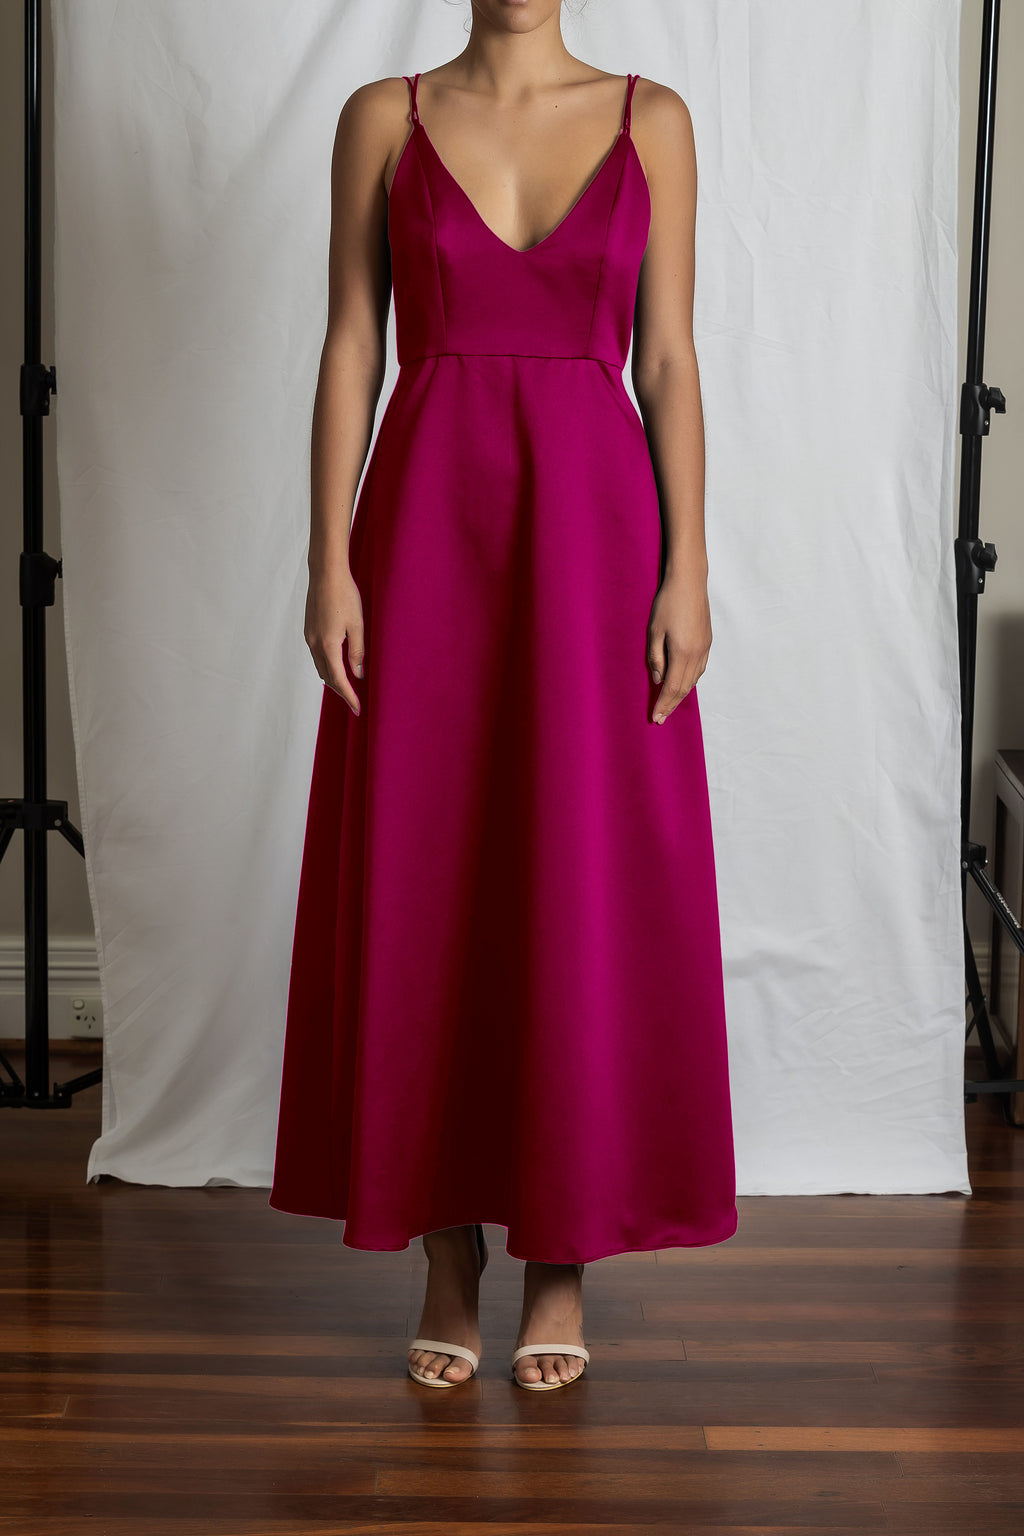 Alyssa A-Line Dress - Magenta Duchess Satin